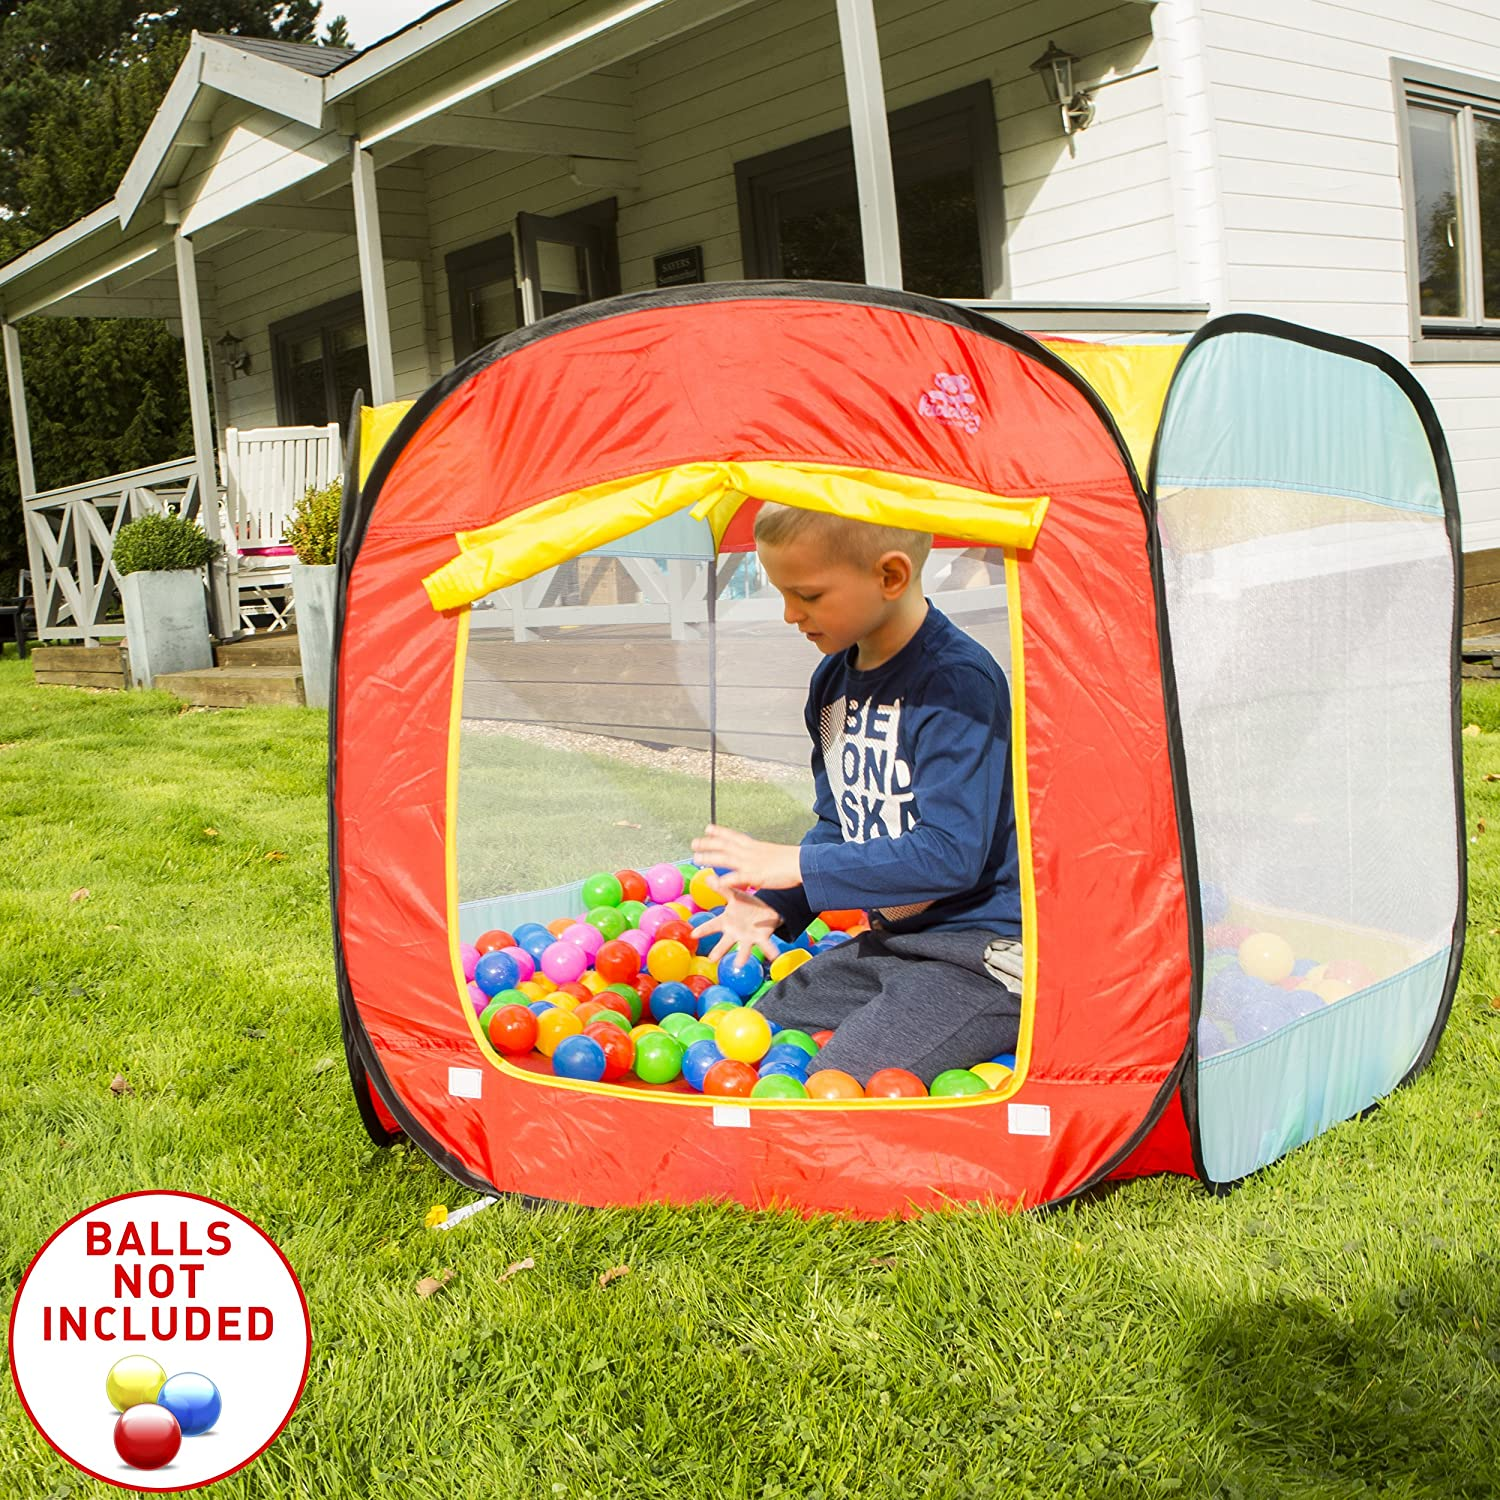 cf96263058e6 ... Ball Pit Play Tent for Kids - 6-Sided Ball Pit for Kids Toddlers and  Baby - Fill with Plastic Balls (Balls Not Included) or Use As an Indoor /  Outdoor ...